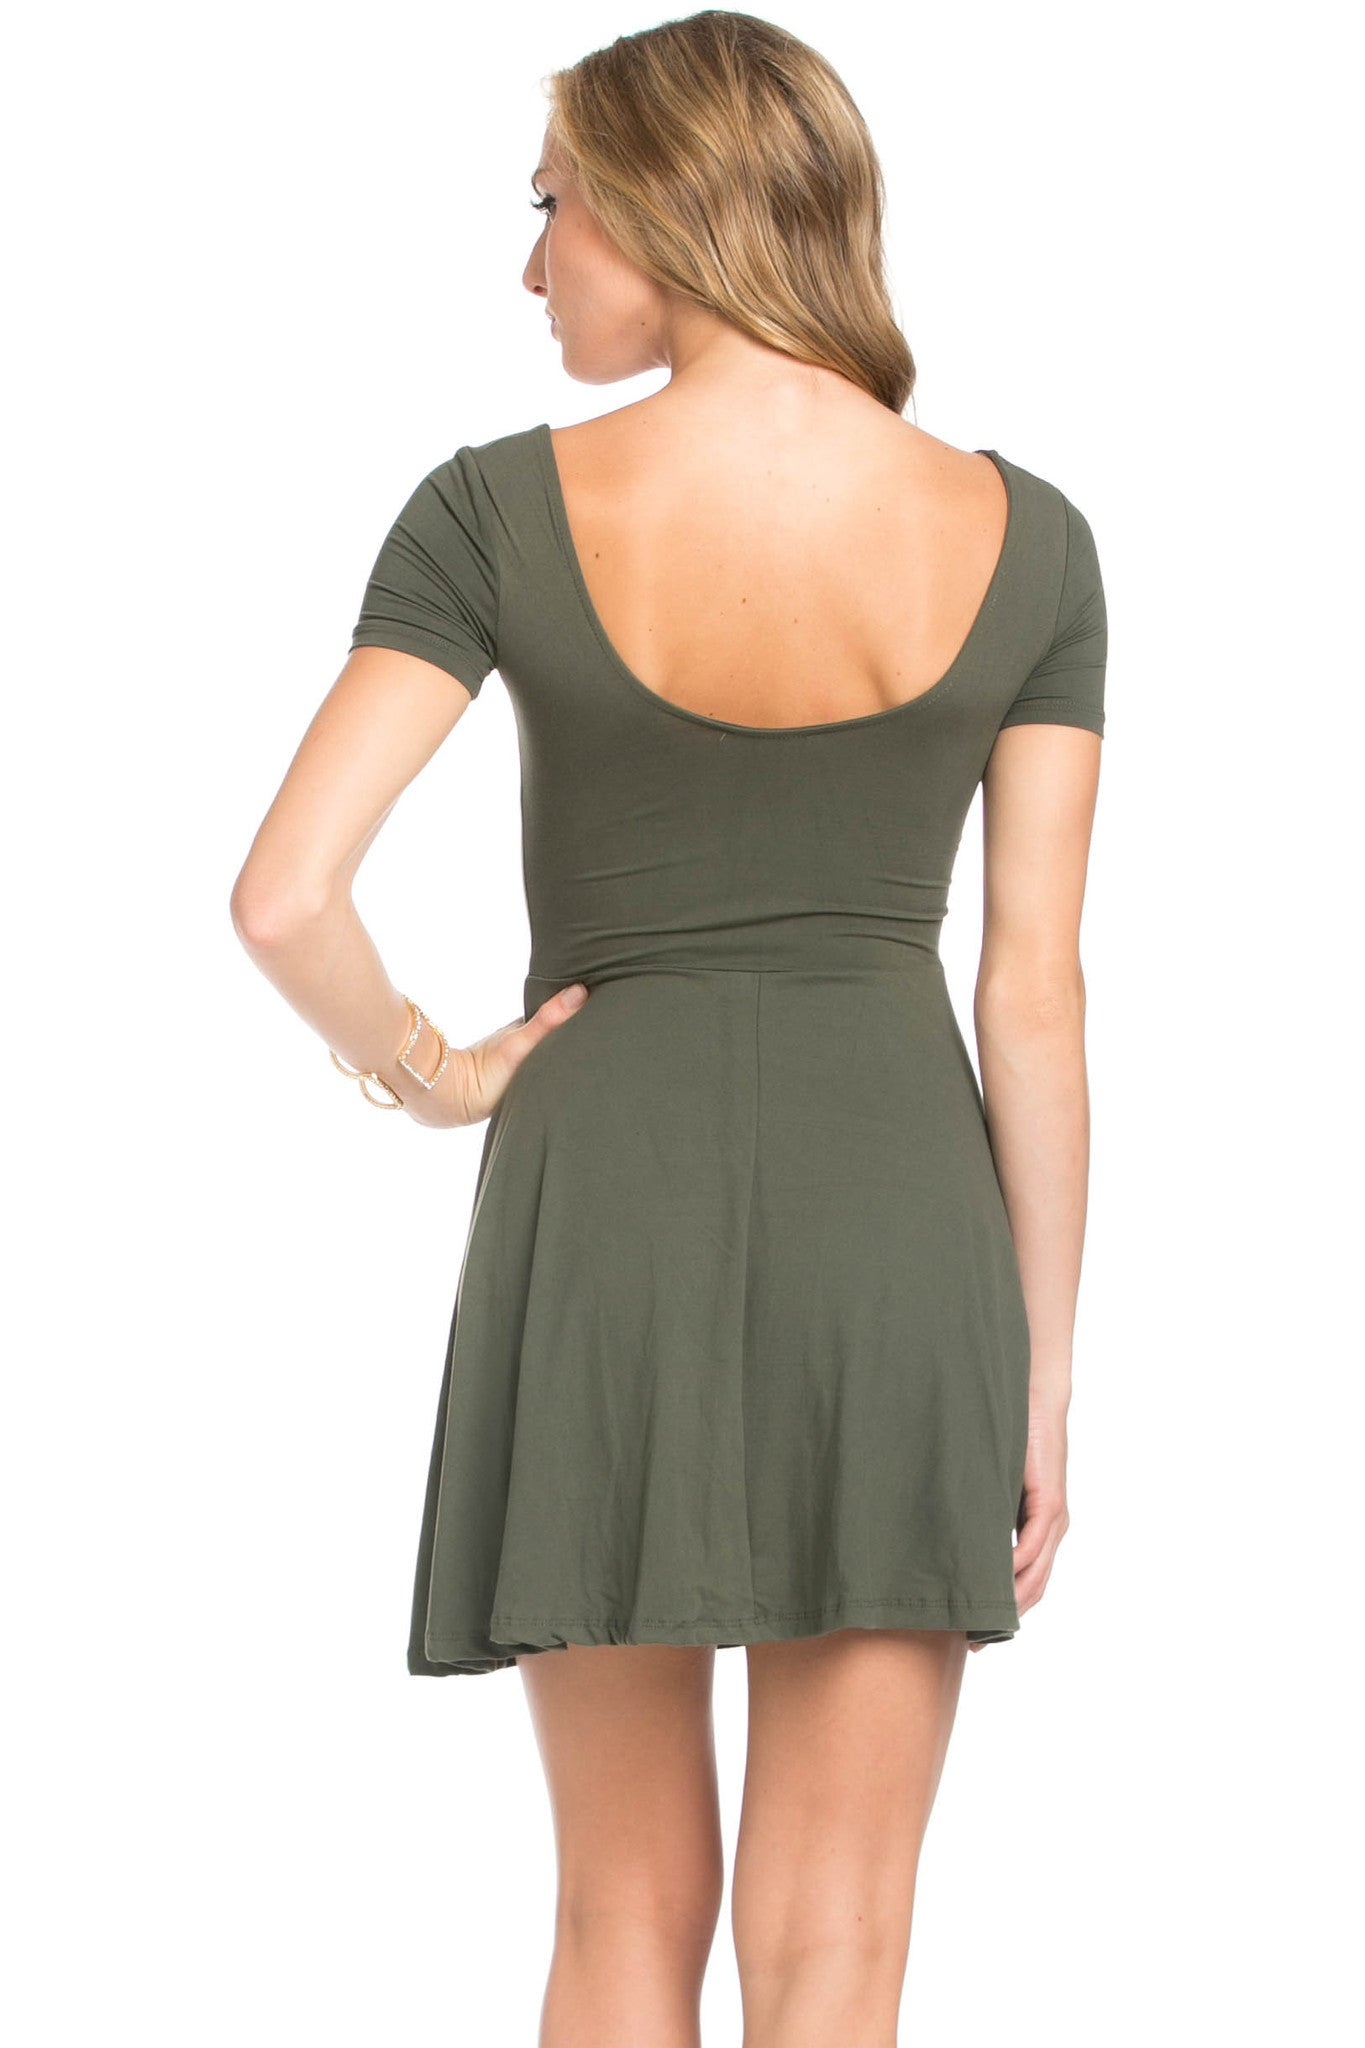 Micro Suede Olive Mini Dress - Dresses - My Yuccie - 3